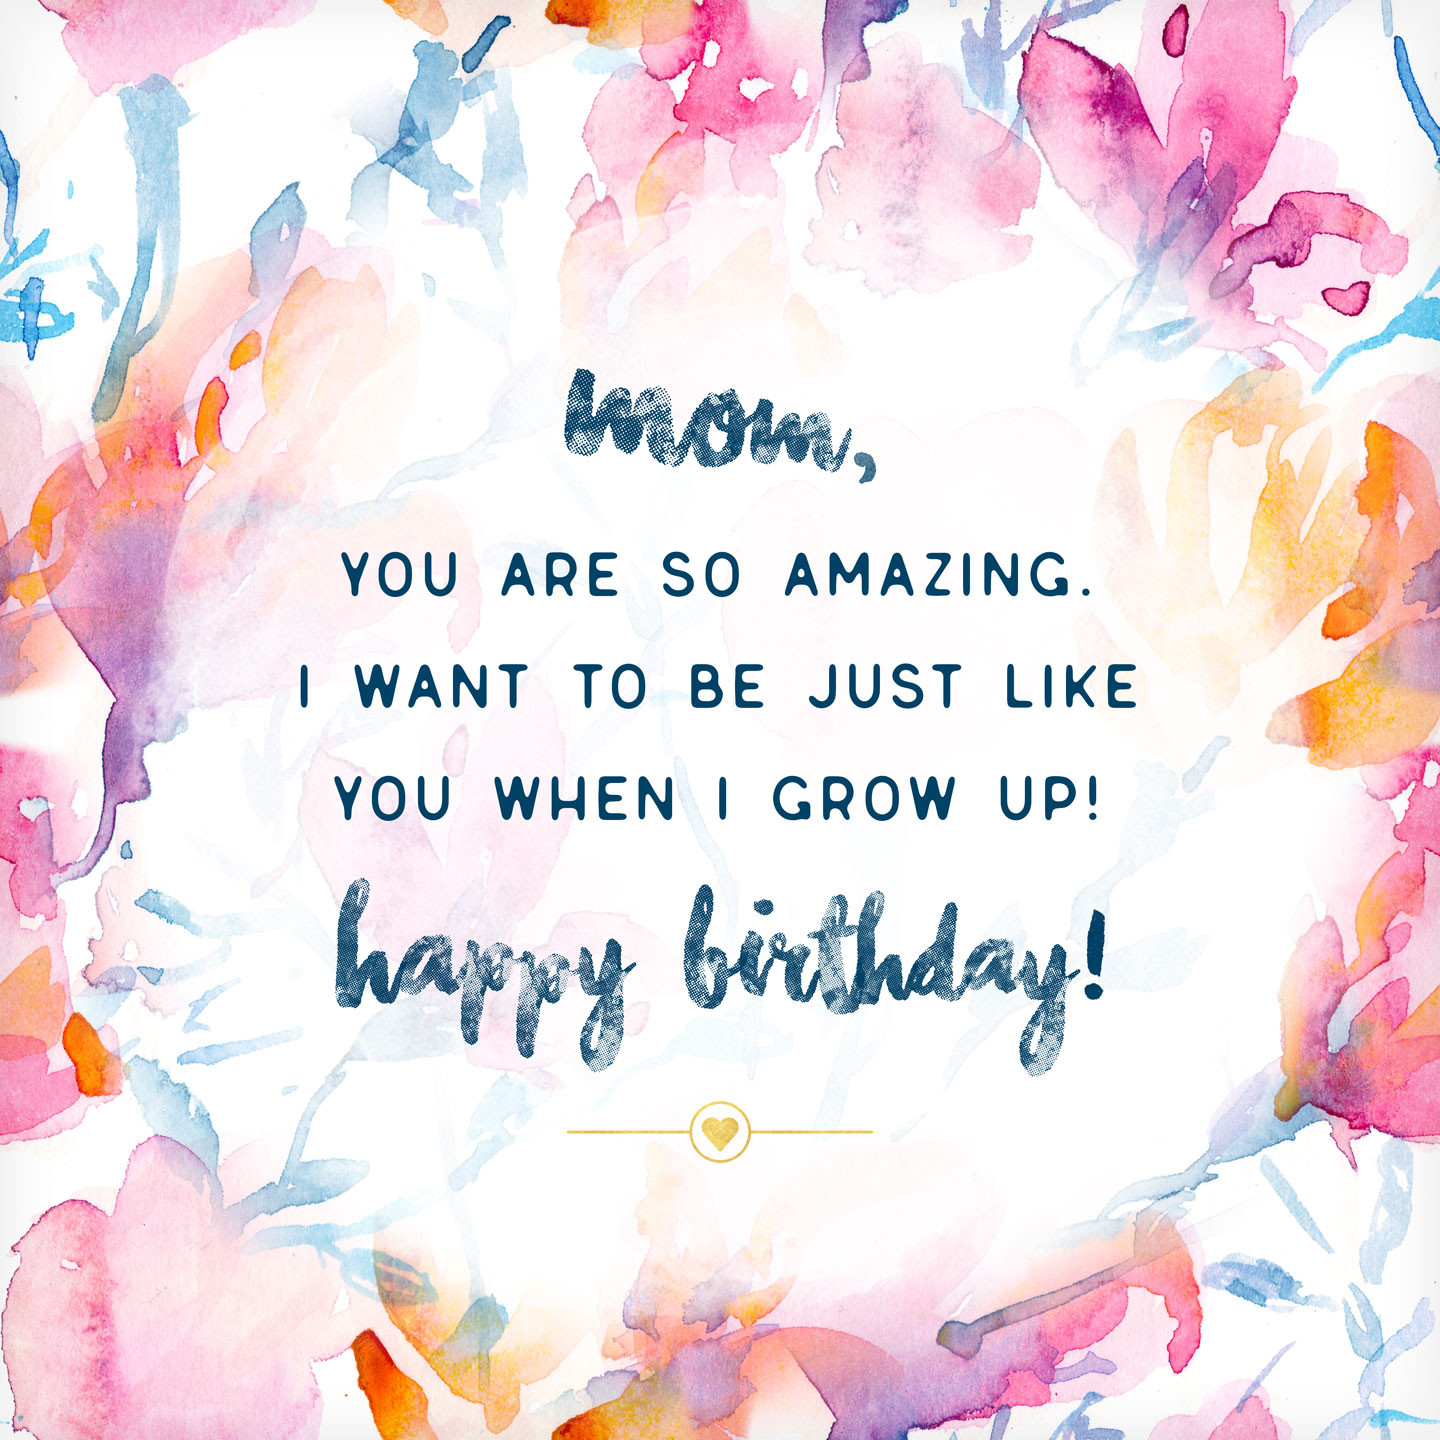 Birthday Wishes Messages  What to Write in a Birthday Card 48 Birthday Messages and